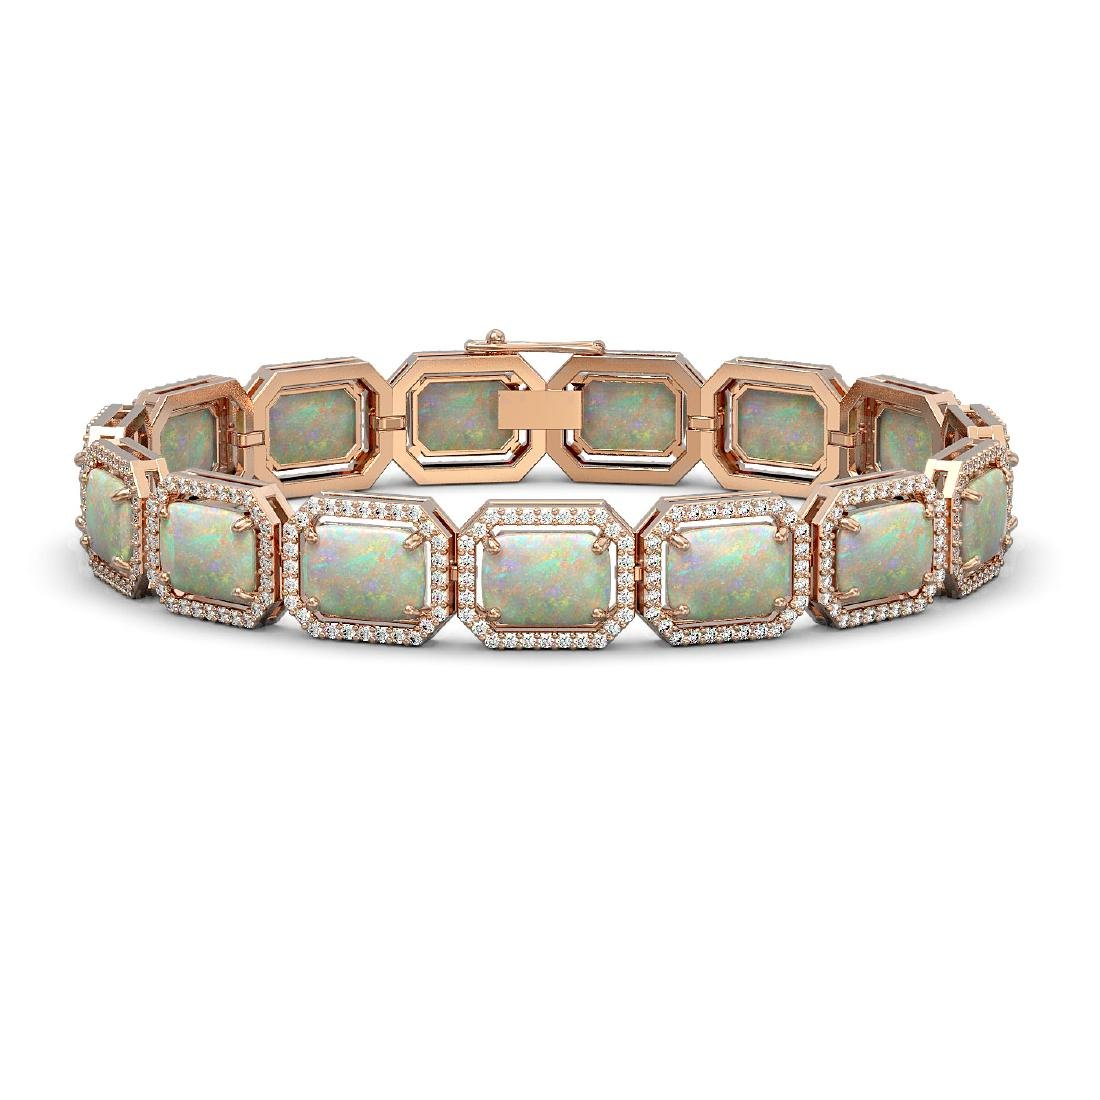 24.37 CTW Opal & Diamond Halo Bracelet 10K Rose Gold